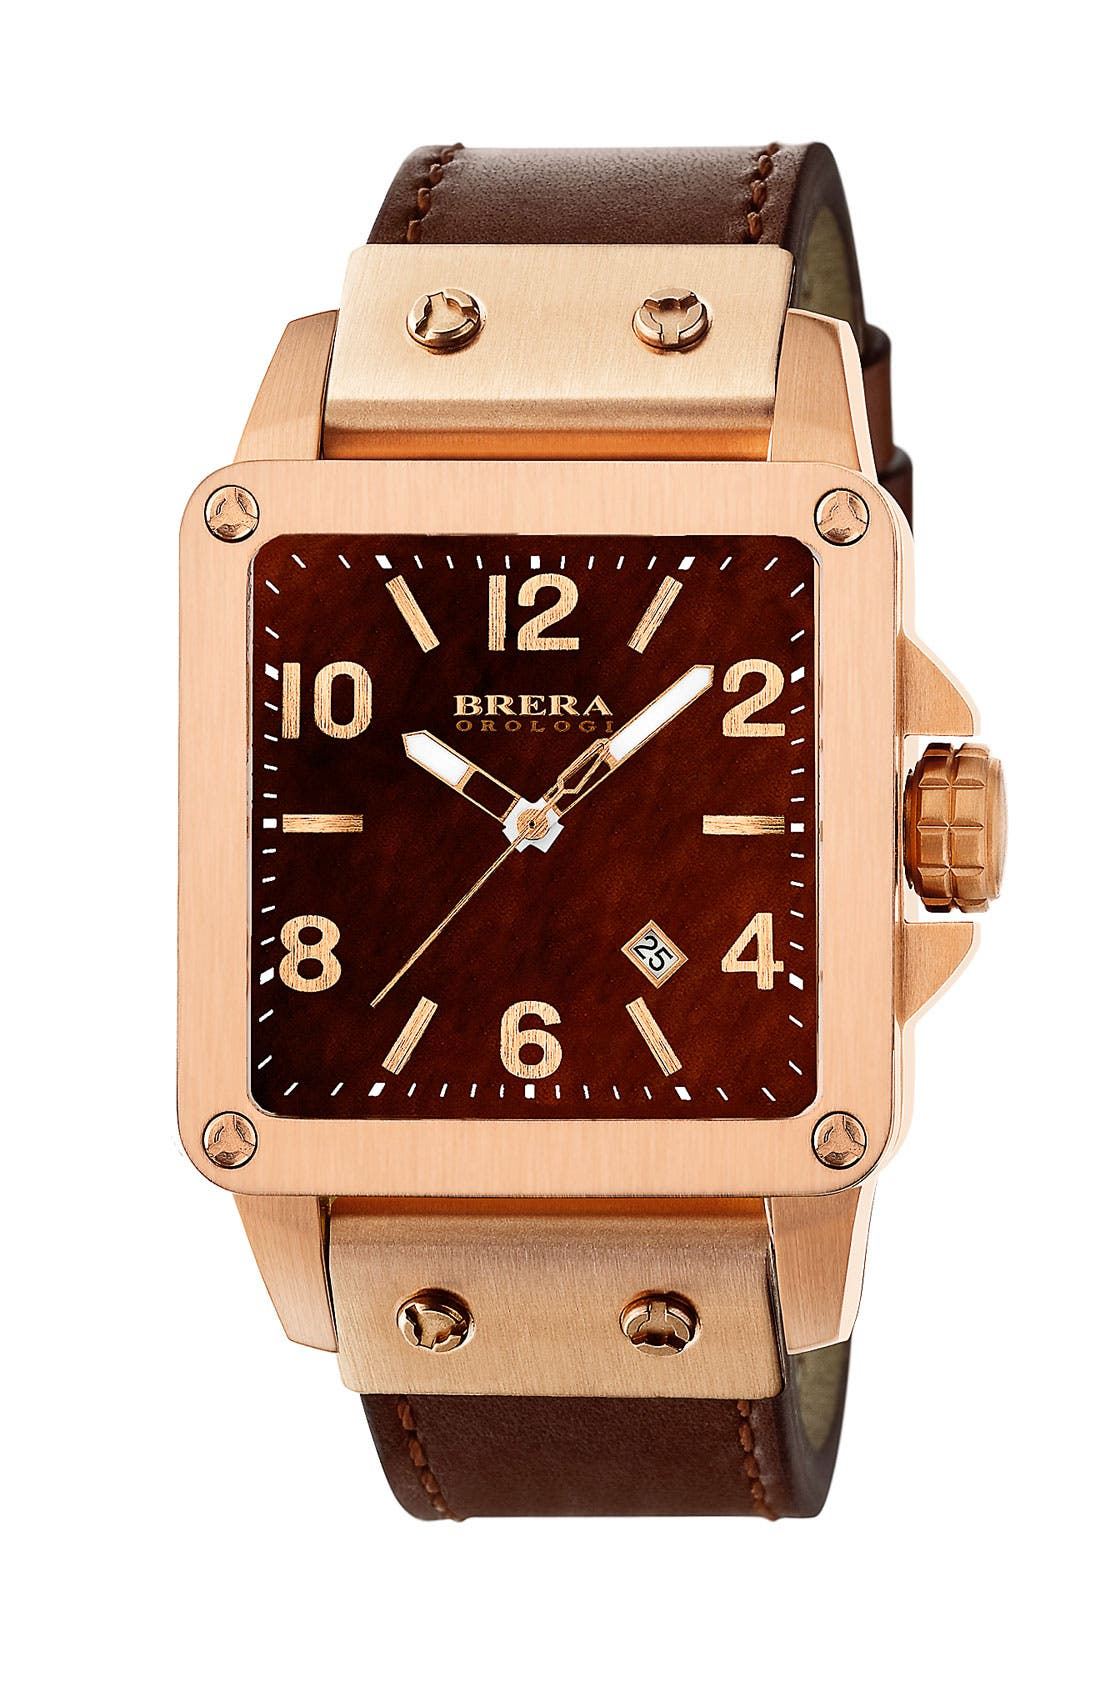 Main Image - STELLA SQUARE WATCH WITH LEATHER STRAP